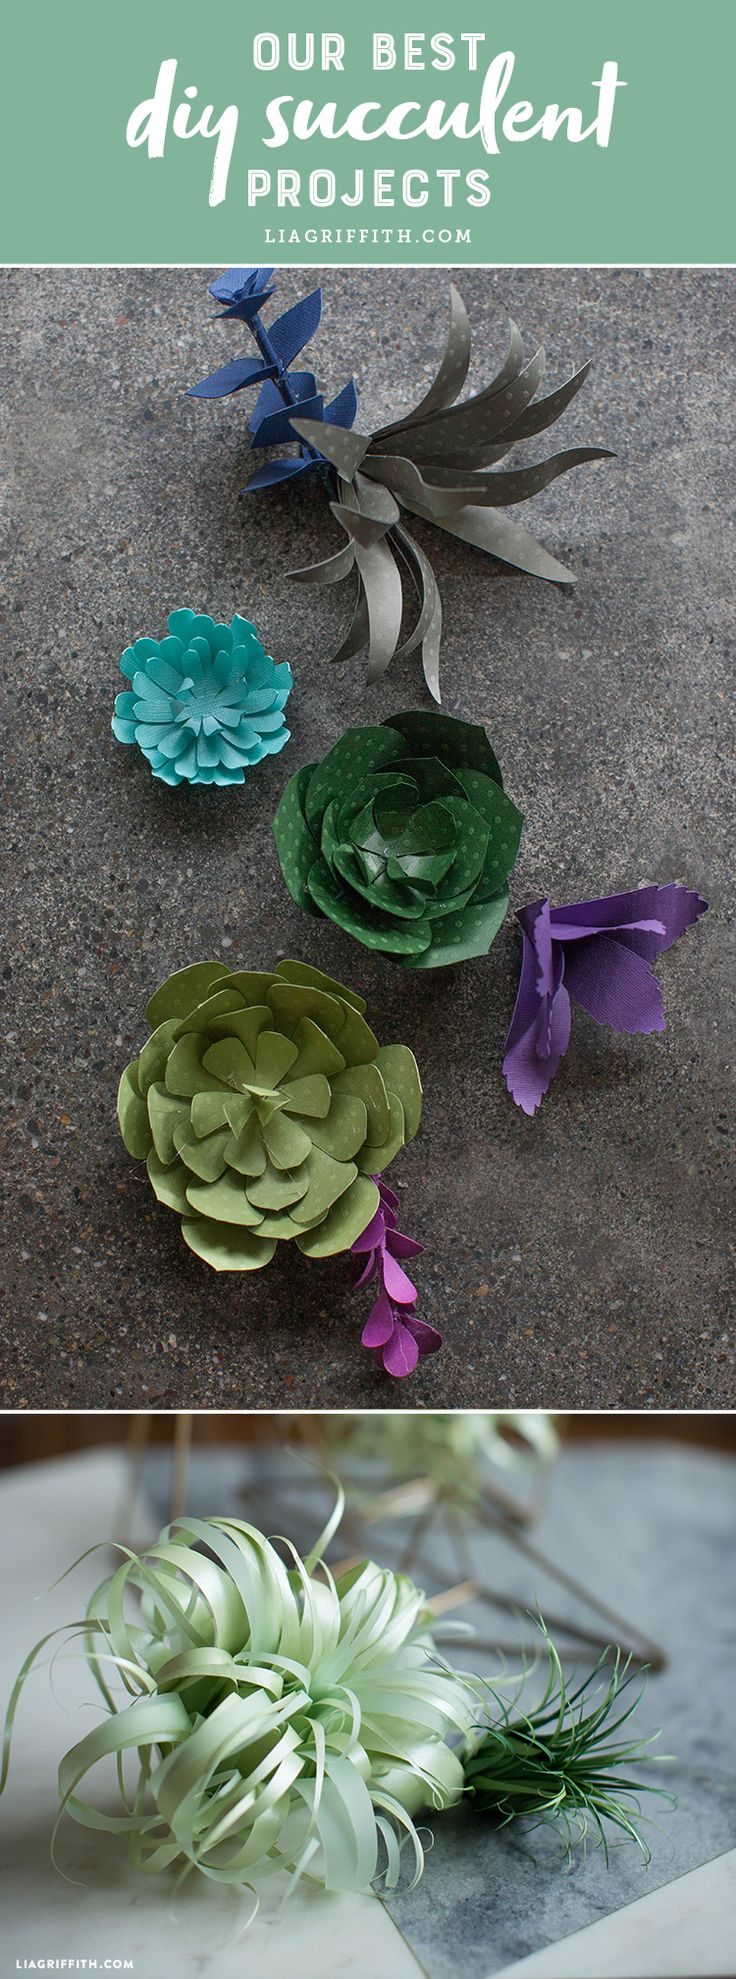 Our Best DIY Succulent Projects - Lia Griffith - www.liagriffith.com #paper #paperart #diysucculents #felt #feltcraft #feltcute #diyplants #diyidea #diyprojects #diyinspiration #madewithlia